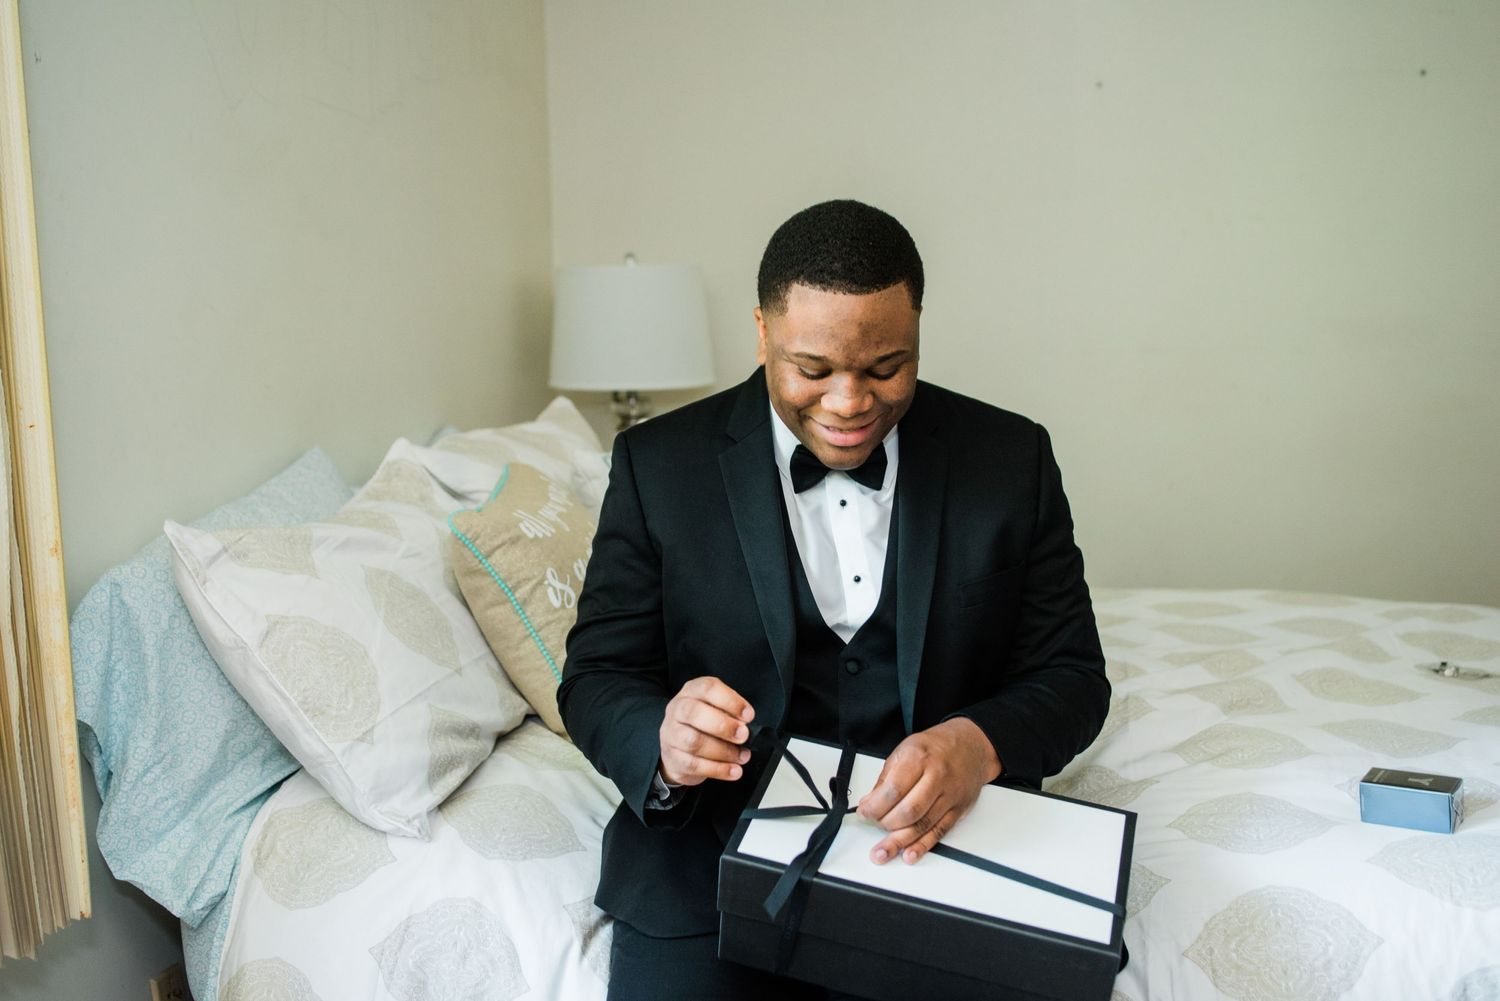 groom opening wedding gift box